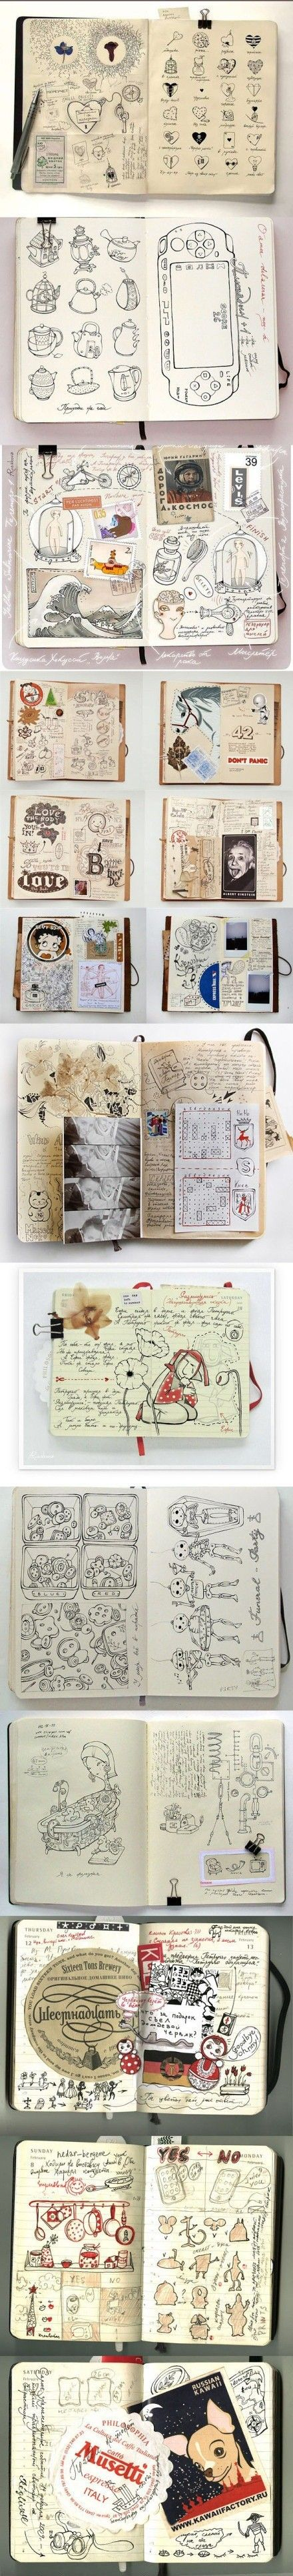 if you bought a bunch of cool moleskins but didn't know what to do with them, get your doodle on!